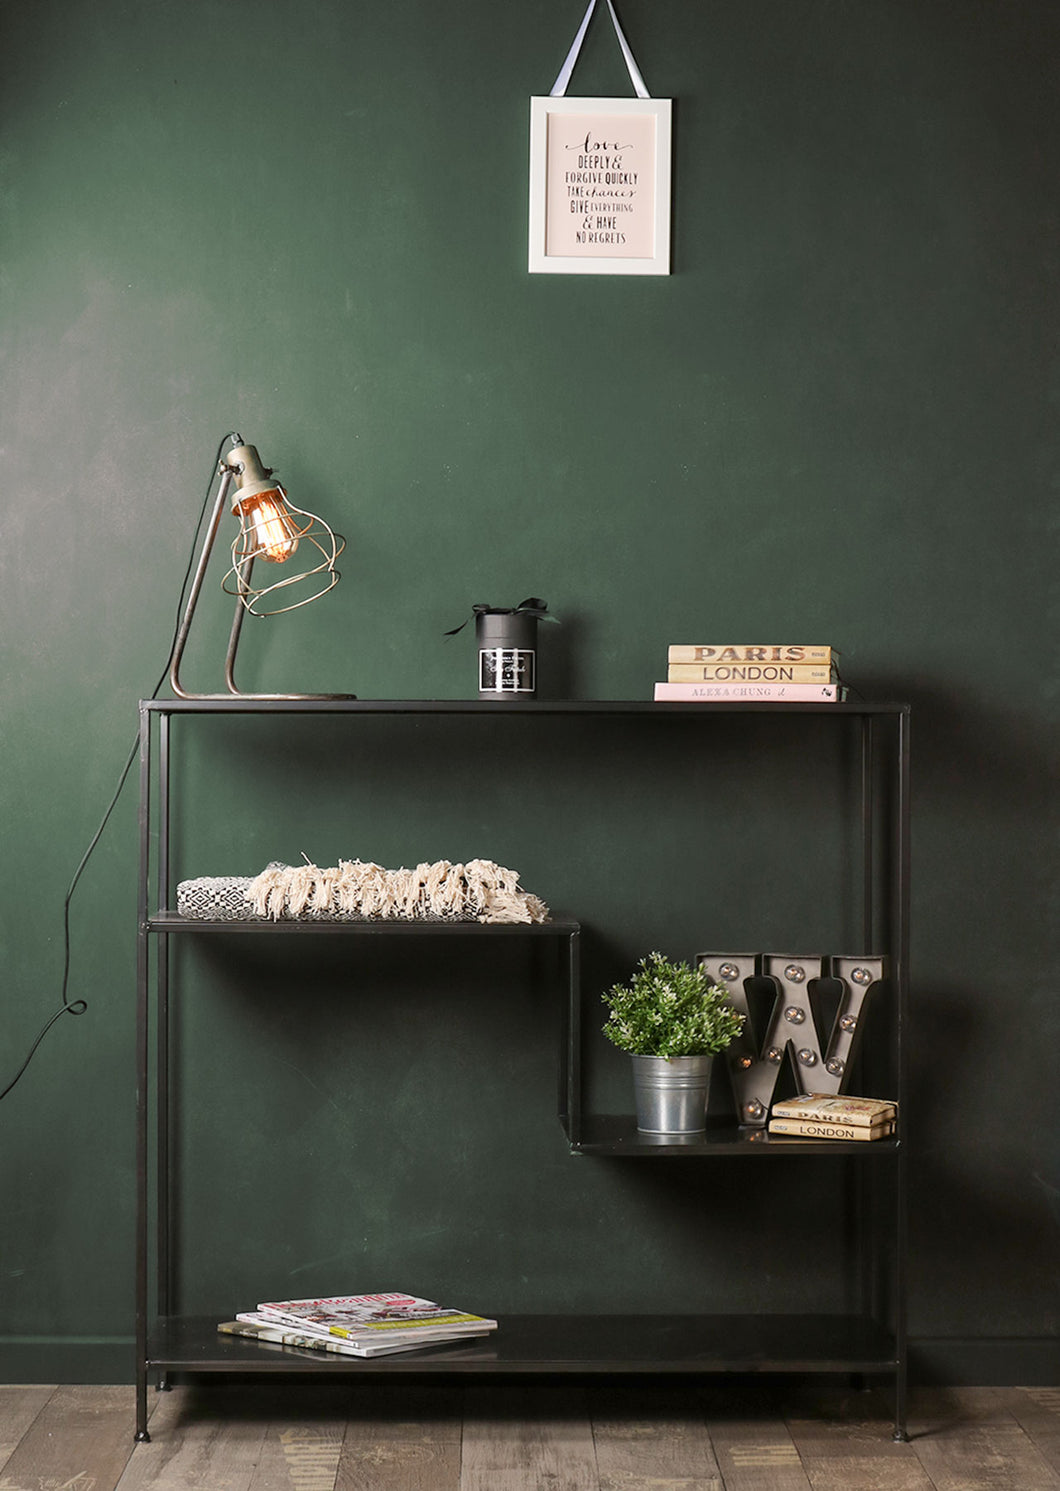 Retro Industrial Style Black Metal Shelving Display Unit Home Furniture - Whaleycorn